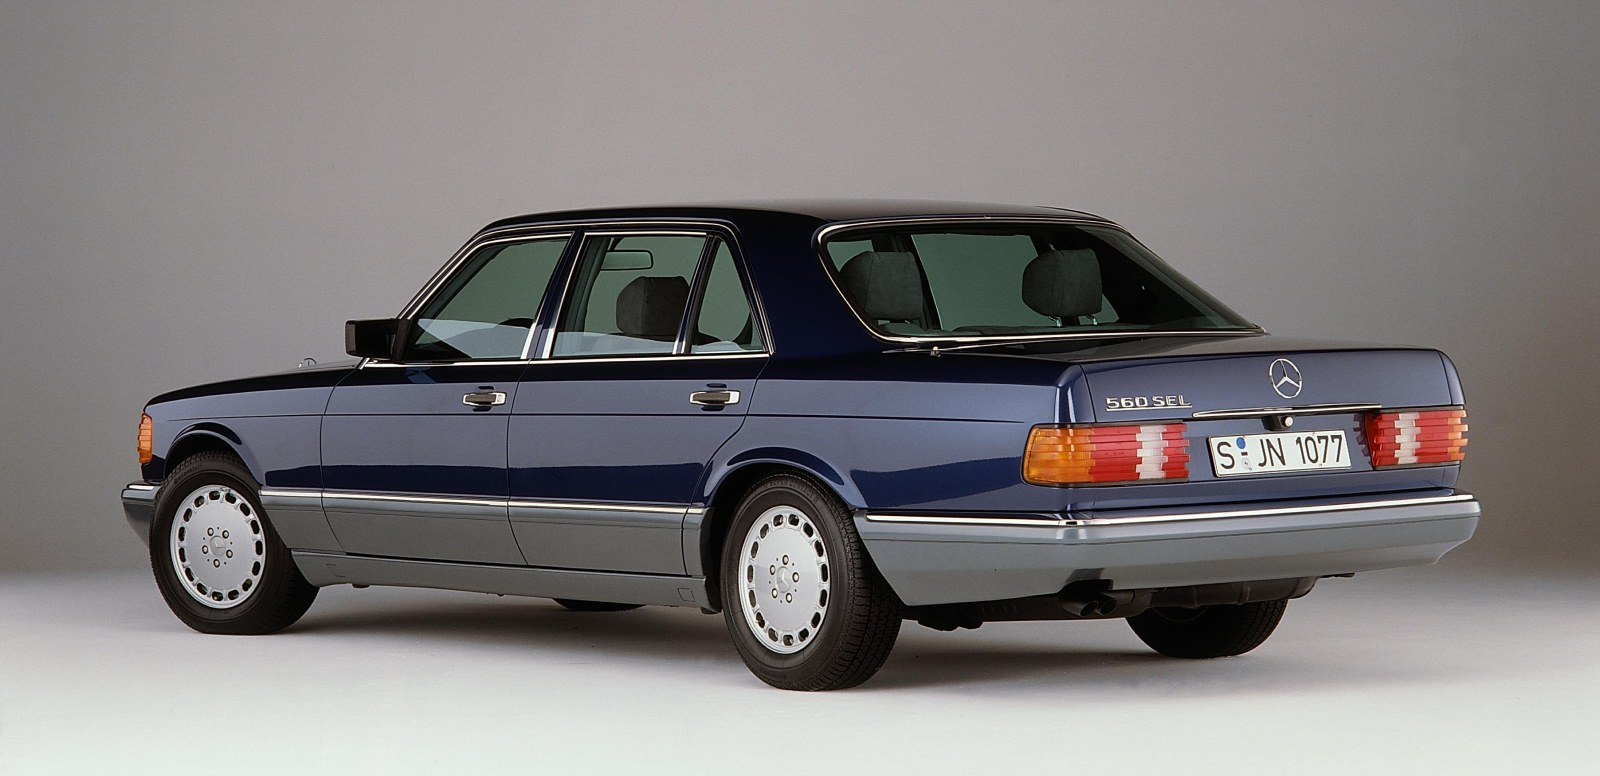 mercedes benz 560 sel technical details history photos